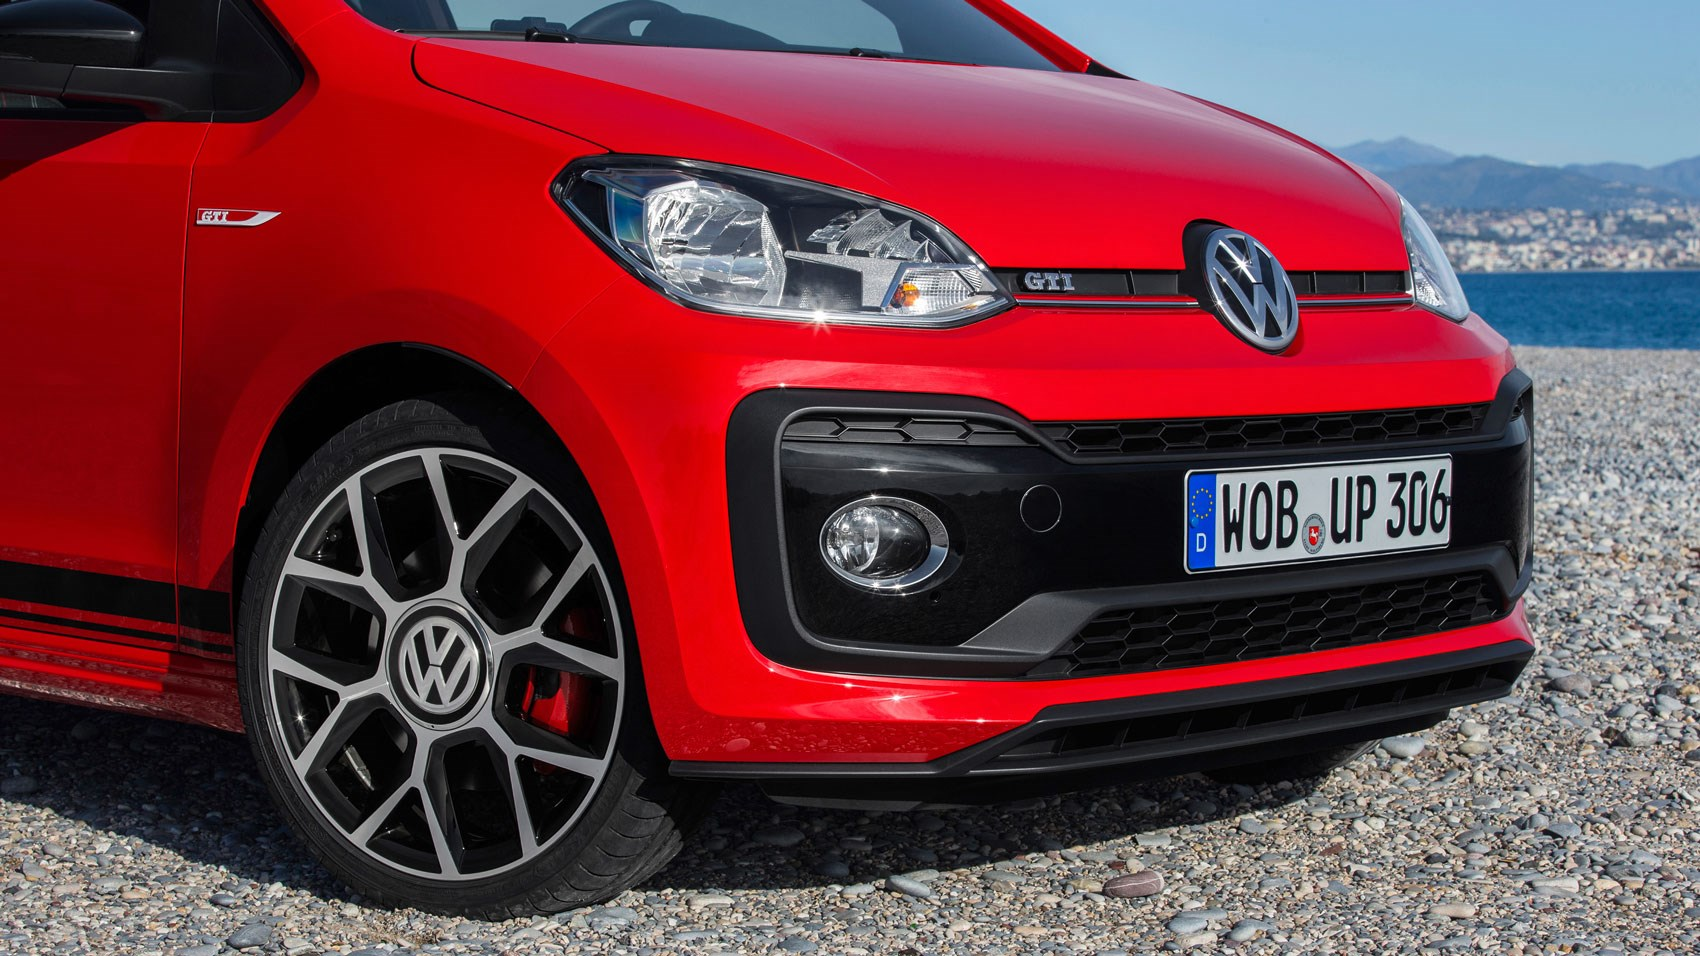 2018 Volkswagen Gti Review >> VW Up GTI (2018) review: big performance on a little budget | CAR Magazine